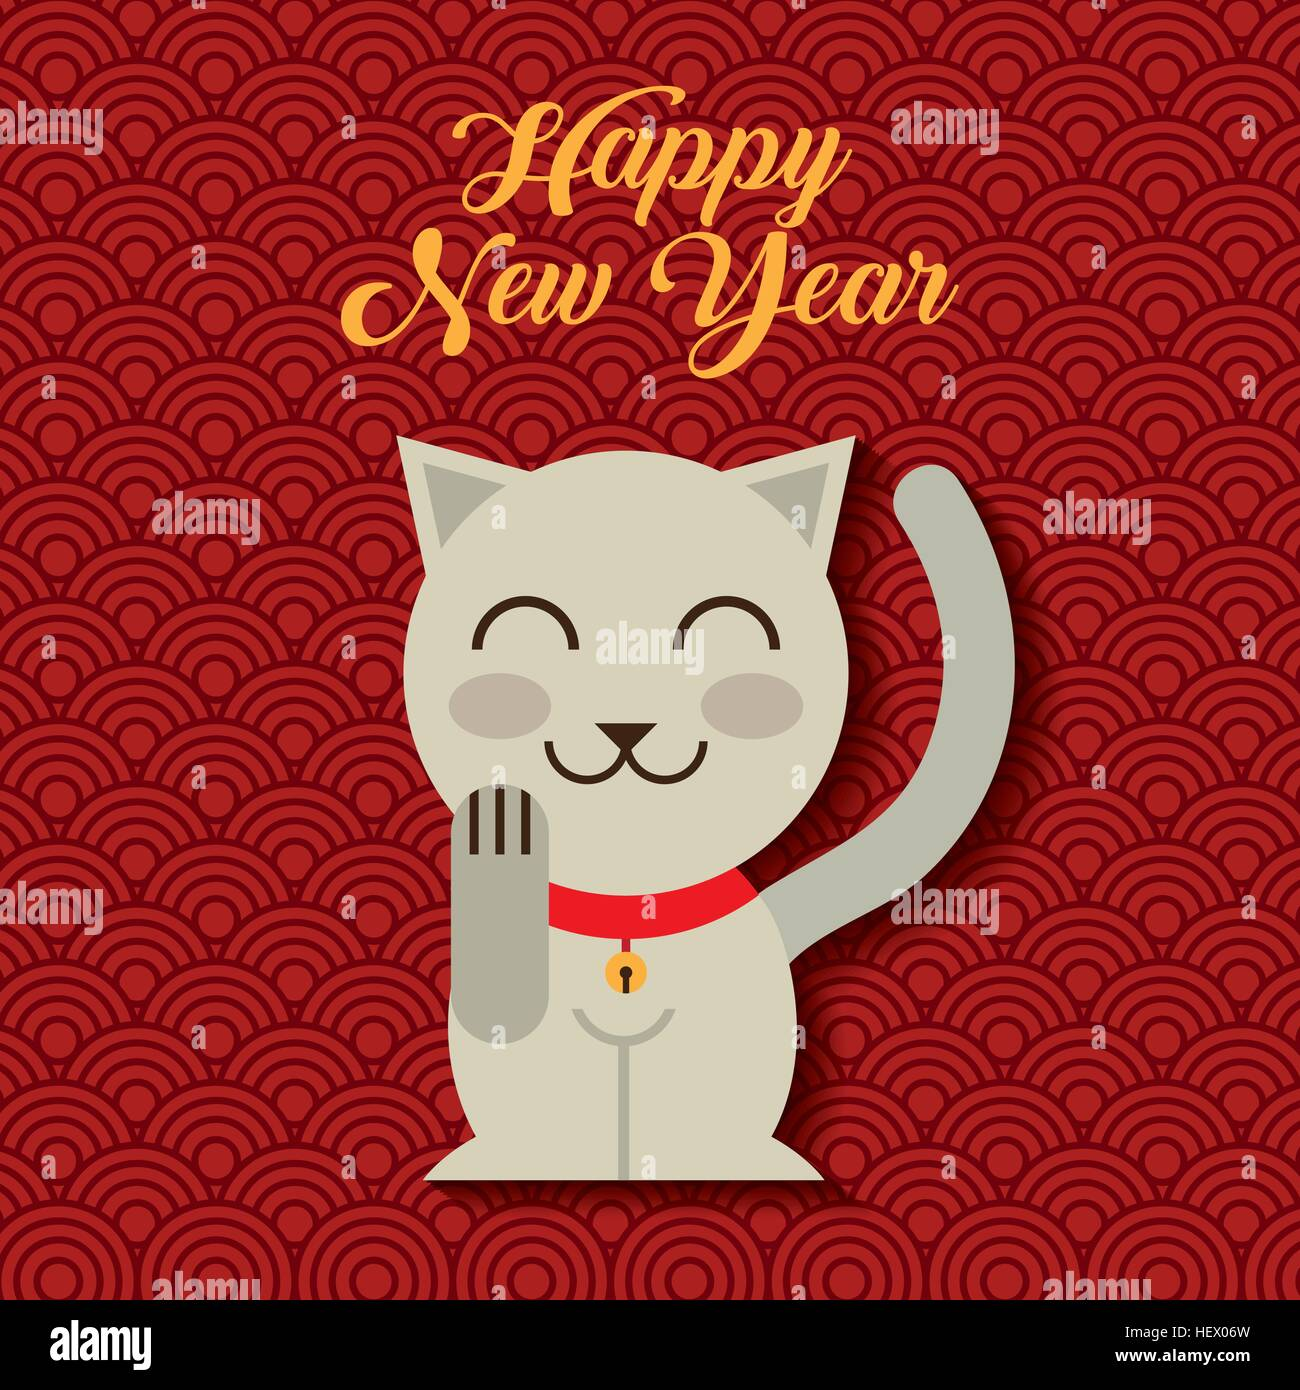 happy new year card with iconic japanese kitten icon over red background colorful design